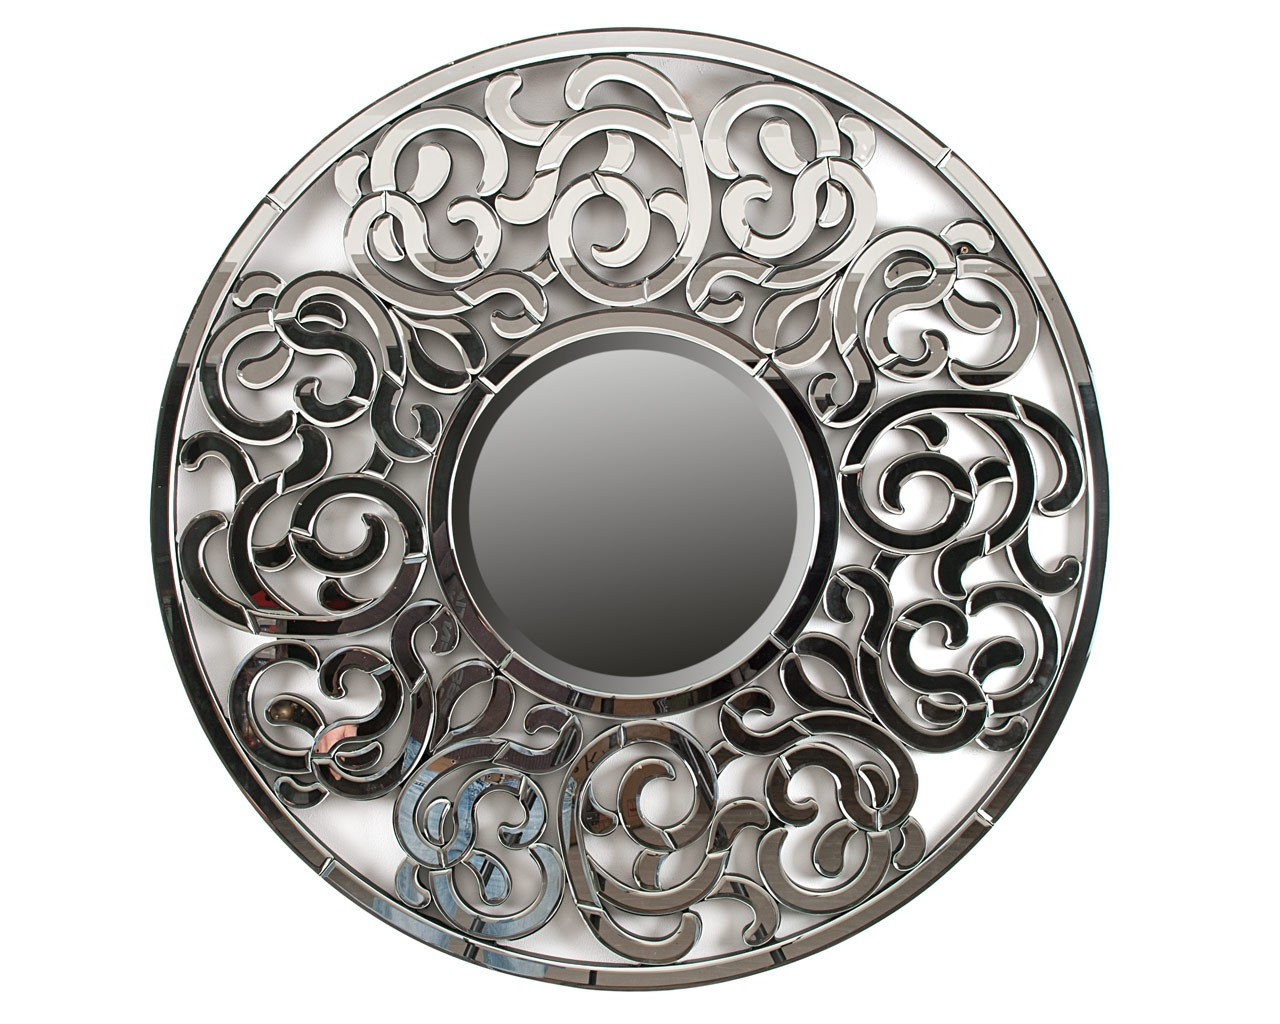 Ornate Round Mirror Designer Wall Art Puji Accessories Intended For Ornate Round Mirror (View 5 of 15)